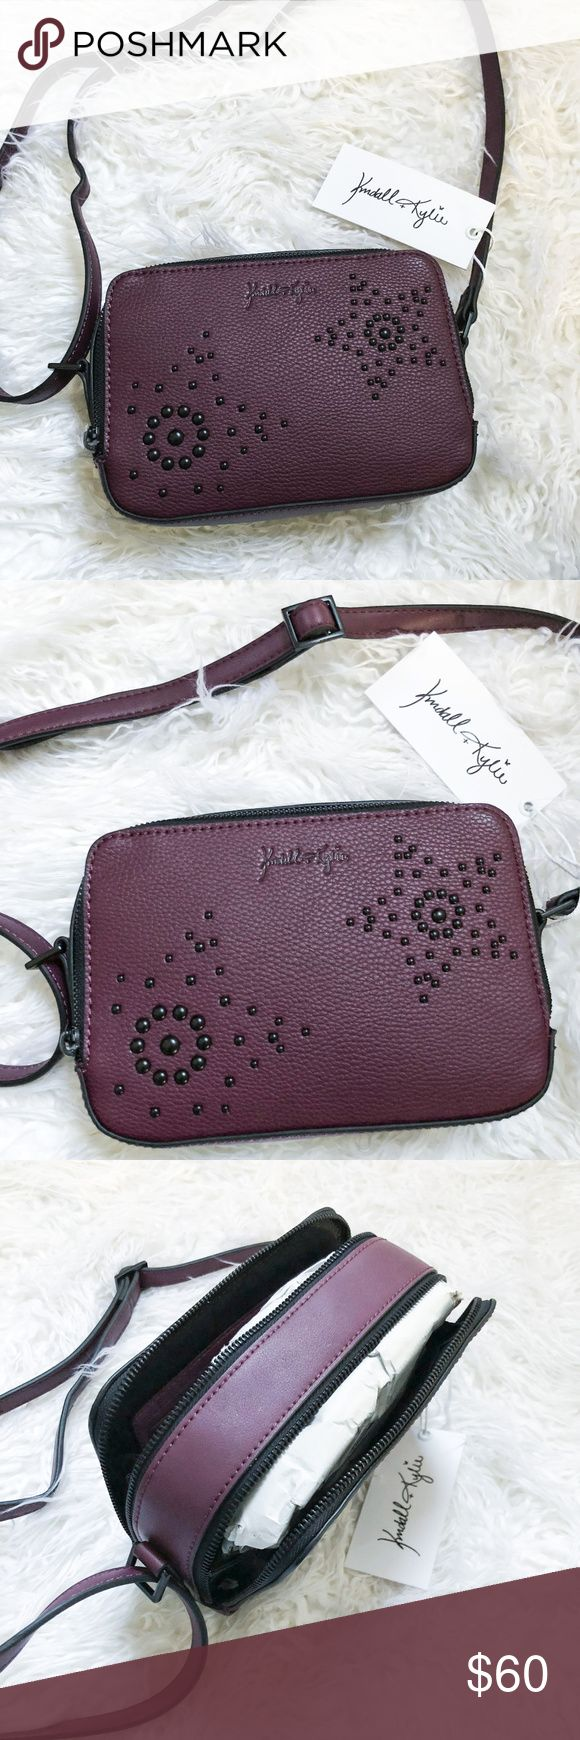 Kendall & Kyle Dark Purple Shoulder Bag Very unique Kendall + Kyle Dark Purple Shoulder Bag!  Brand new. It has two zippers with plenty of storage. Very trendy style! Kendall & Kylie Bags Shoulder Bags